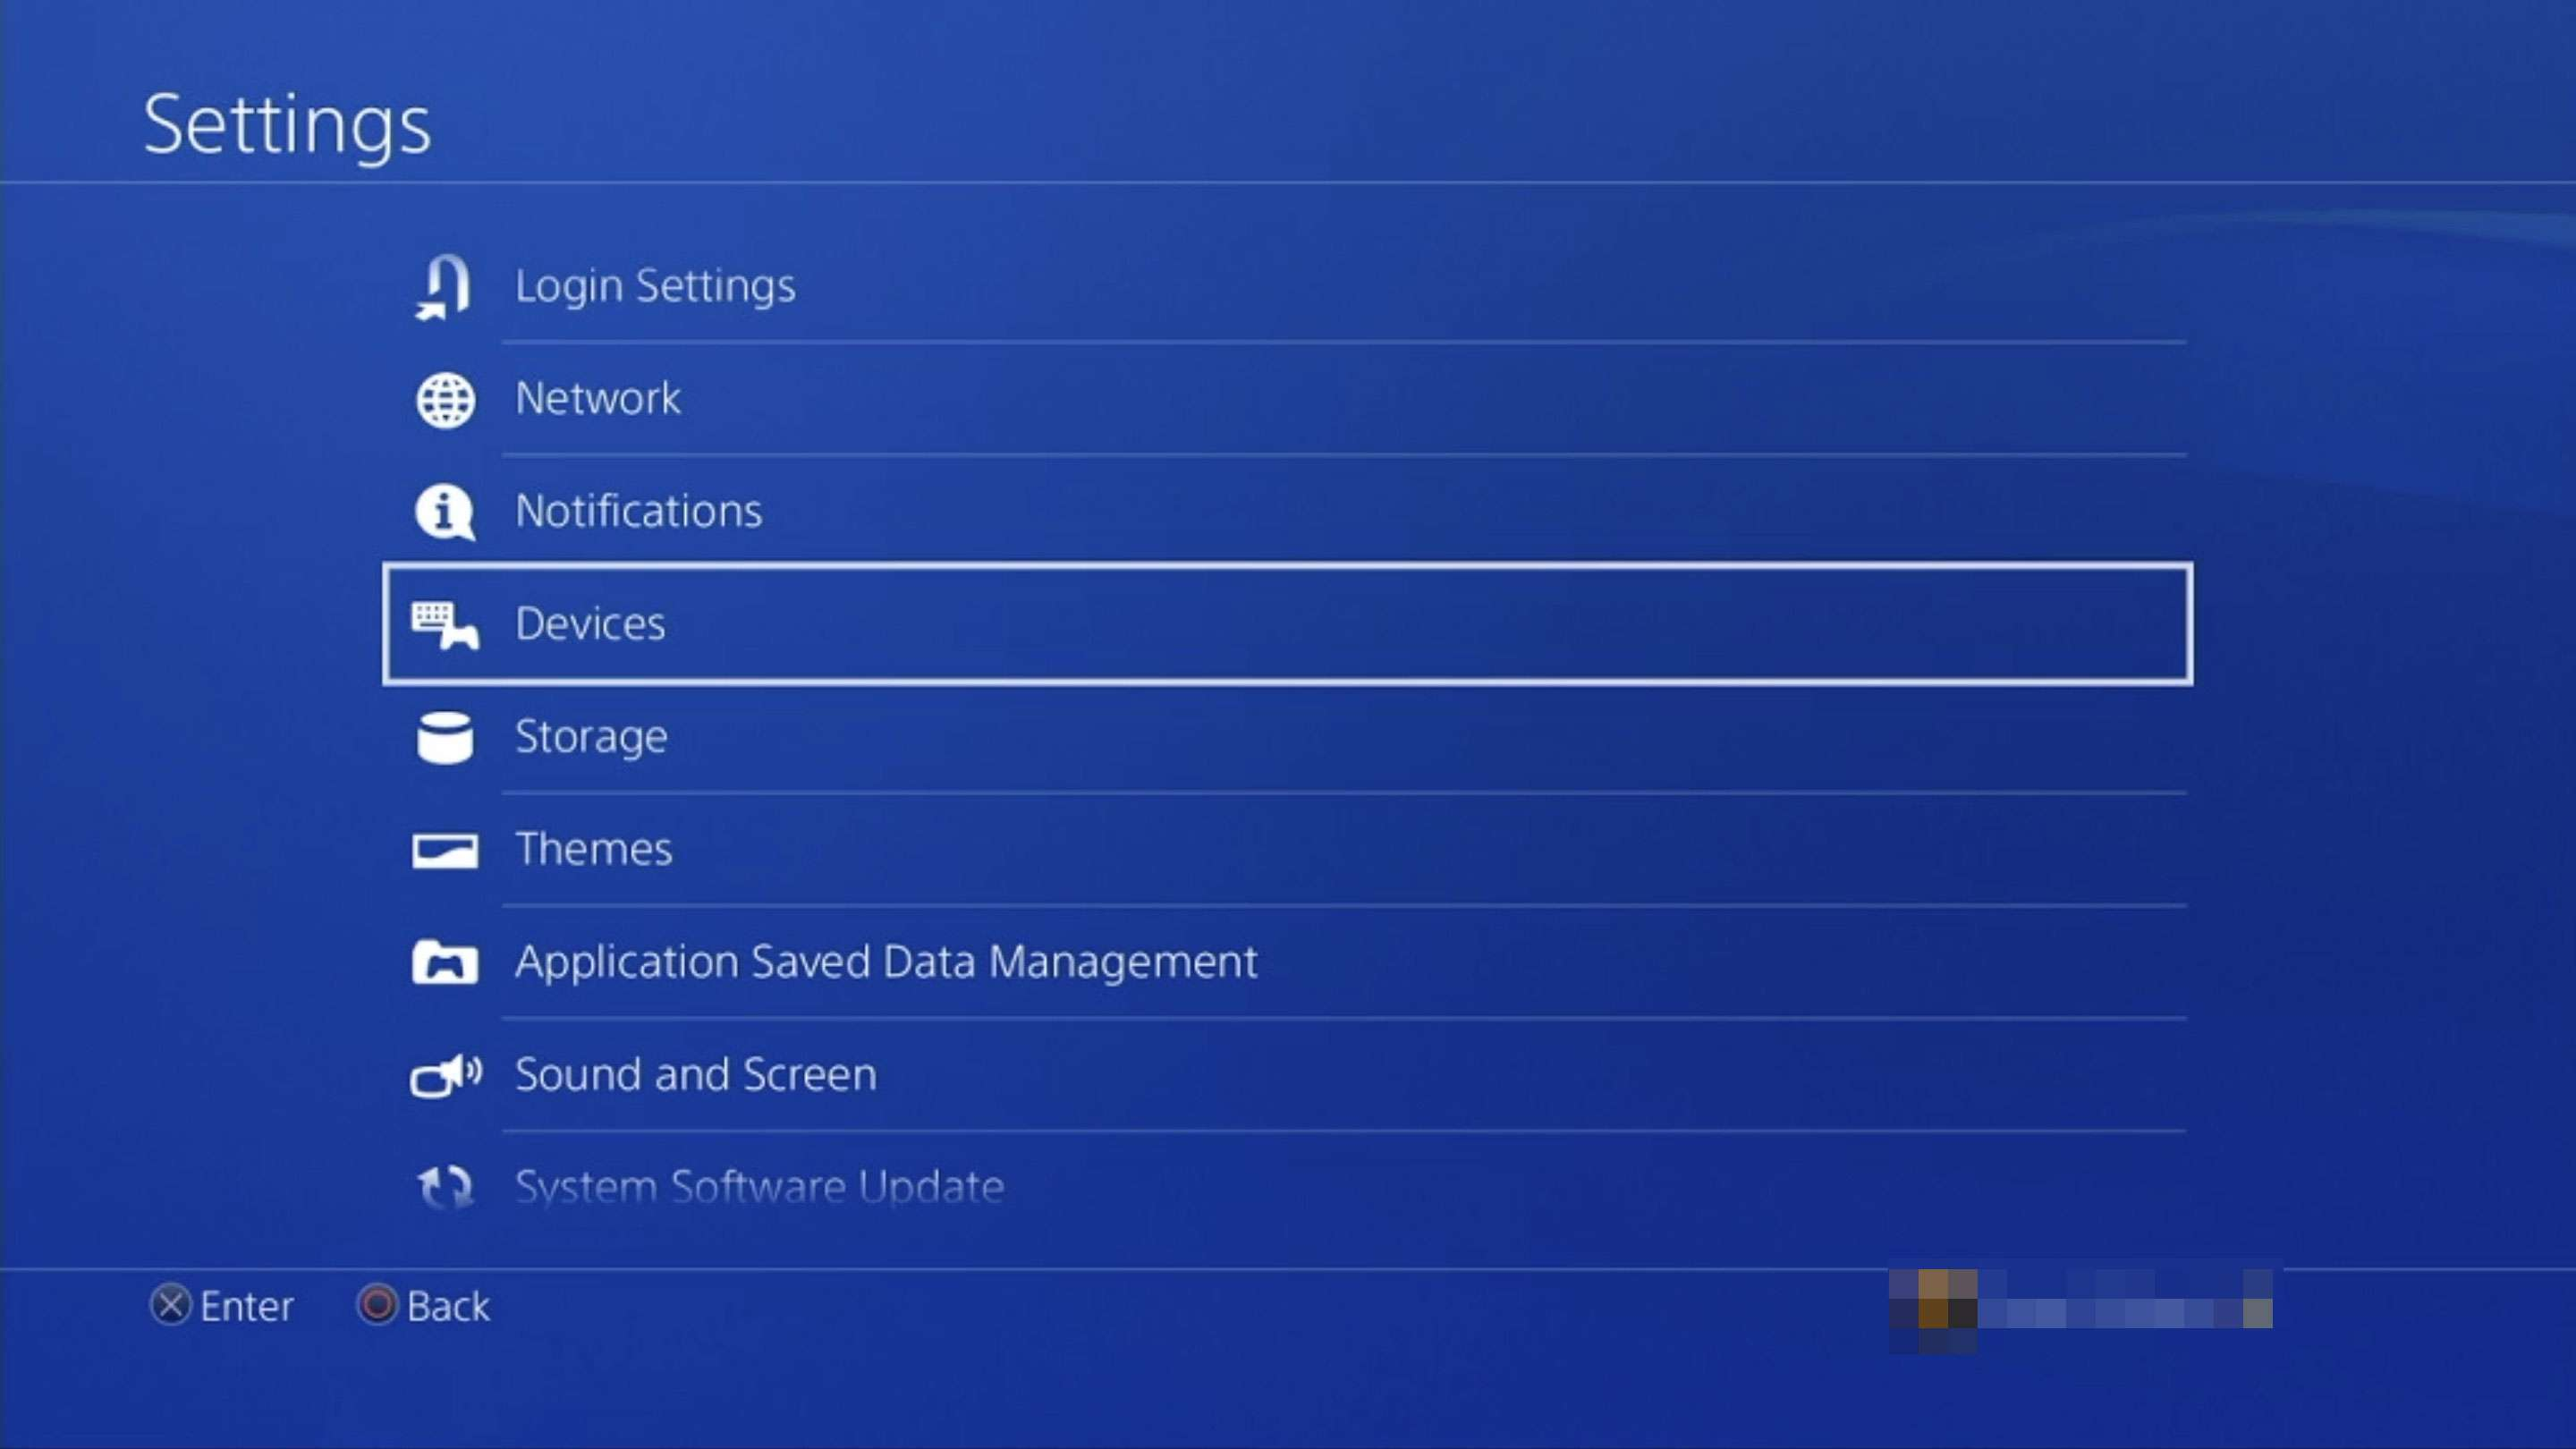 Devices in PlayStation 4 settings